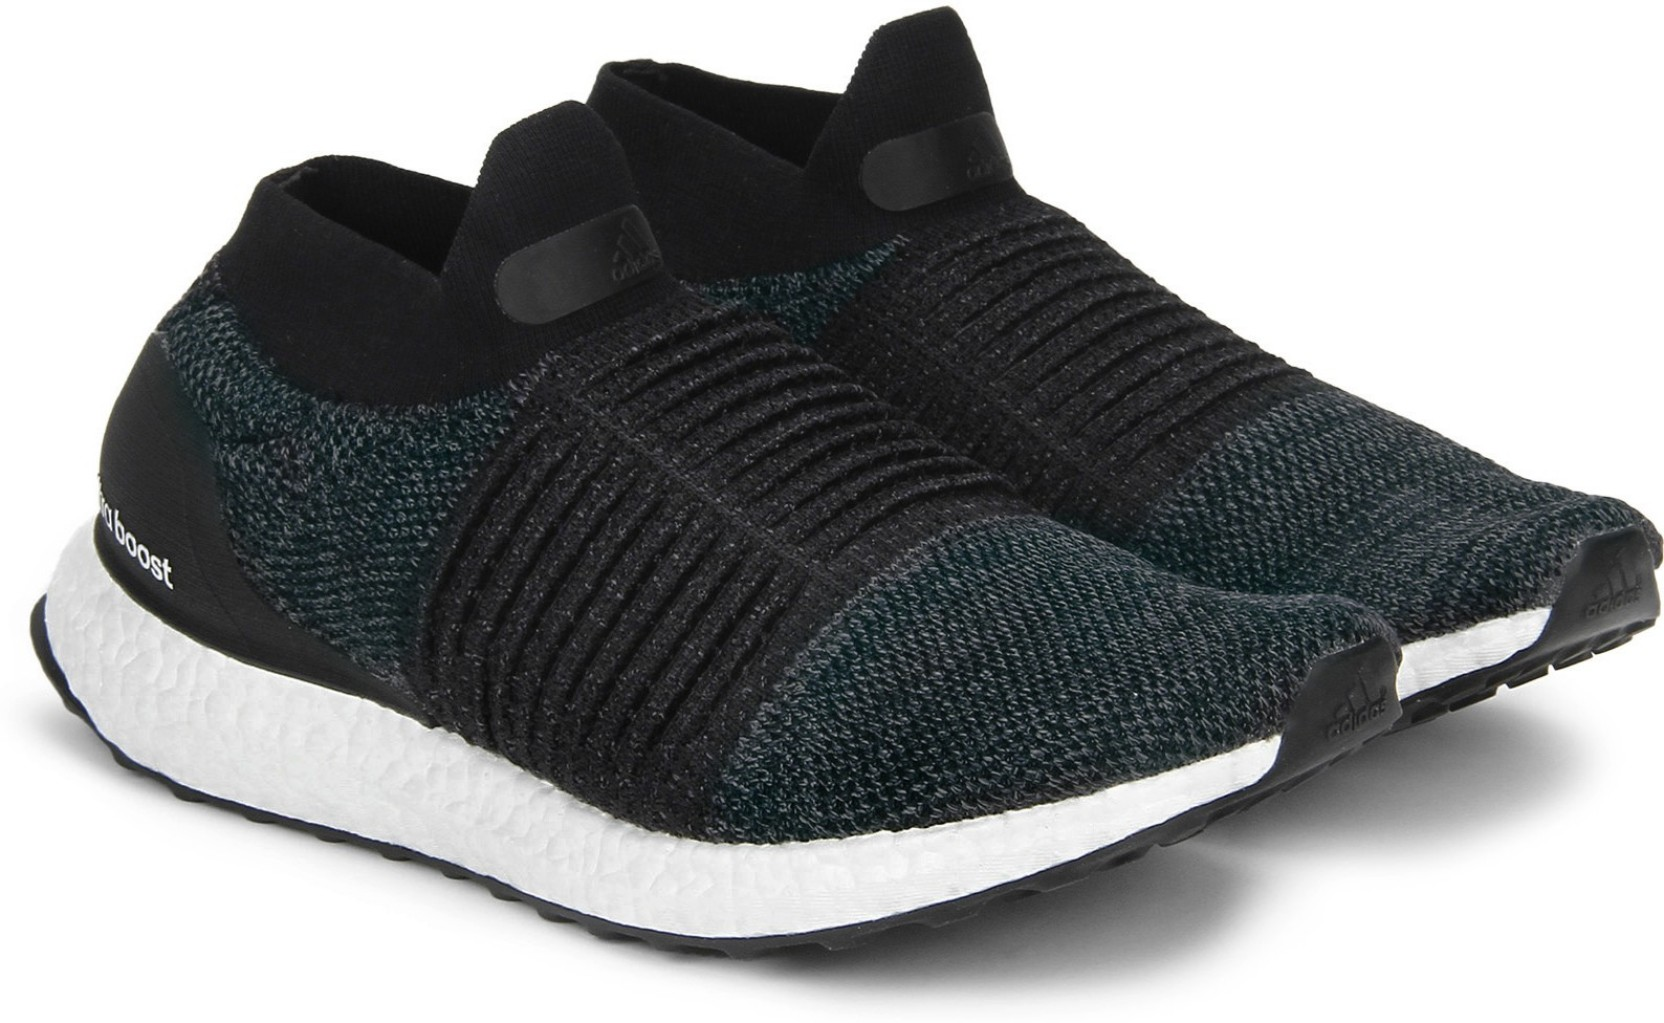 9222be28b6a1 ADIDAS ULTRABOOST LACELESS W Running Shoes For Women - Buy CBLACK ...